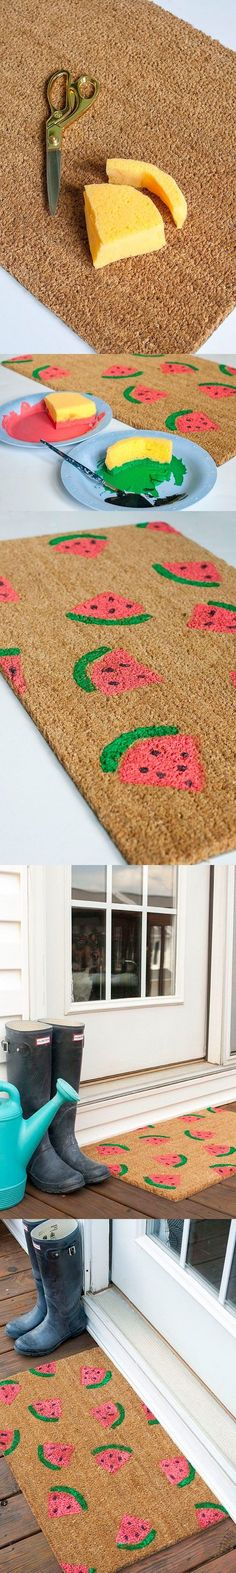 Felpudo con estampado DIY - ehow.com - DIY Stamped Watermelon Doormat